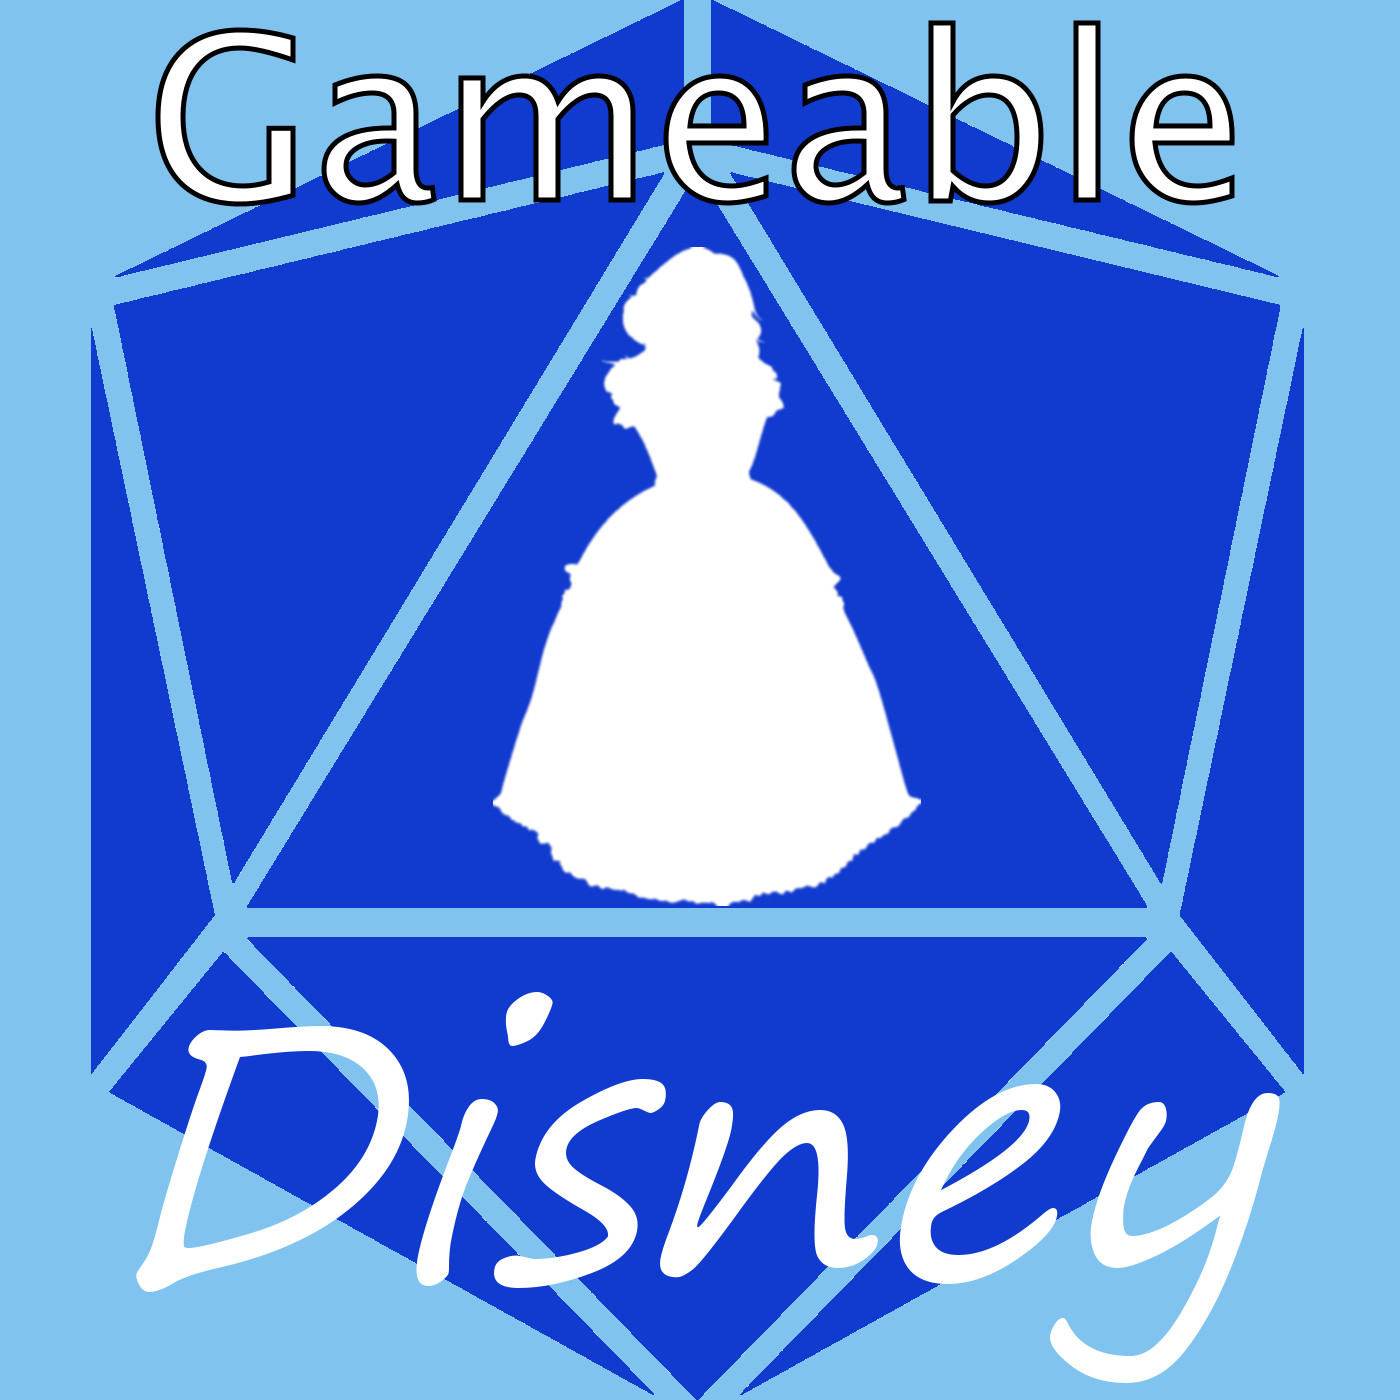 The Gameable Disney Podcast logo